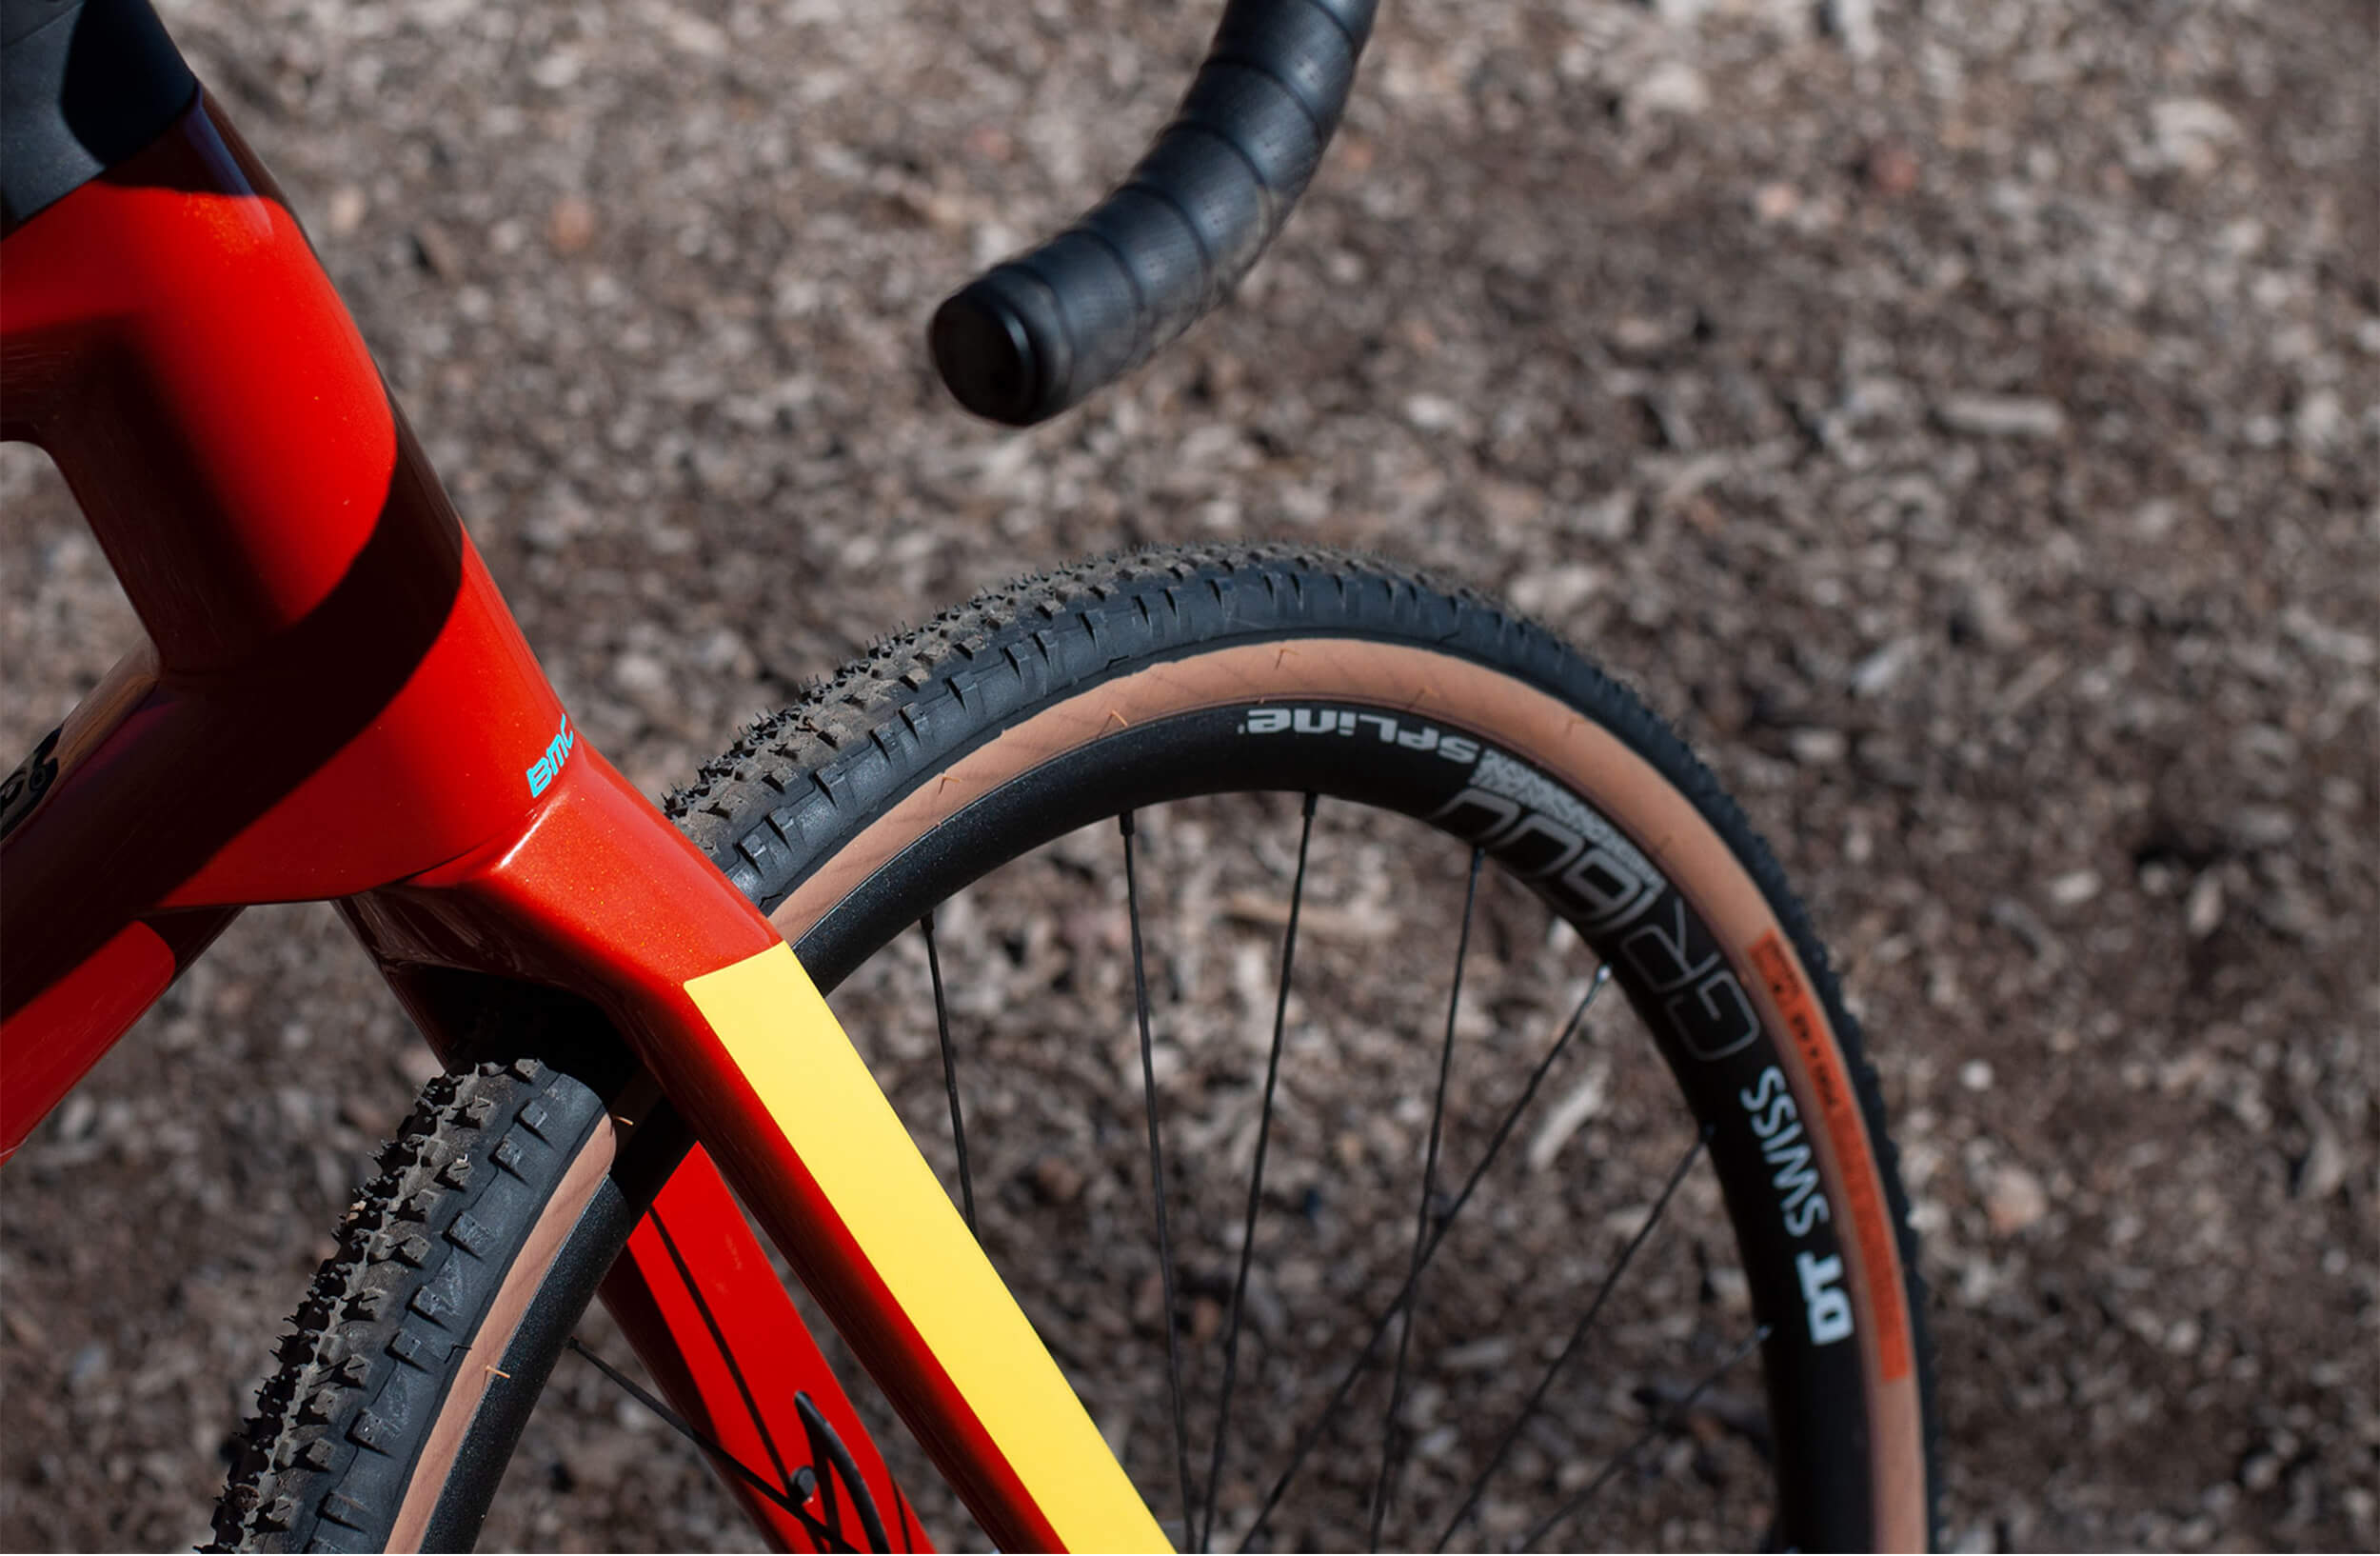 2020 BMC URS TWO Disc Tire Clearance - Contender Bicycles